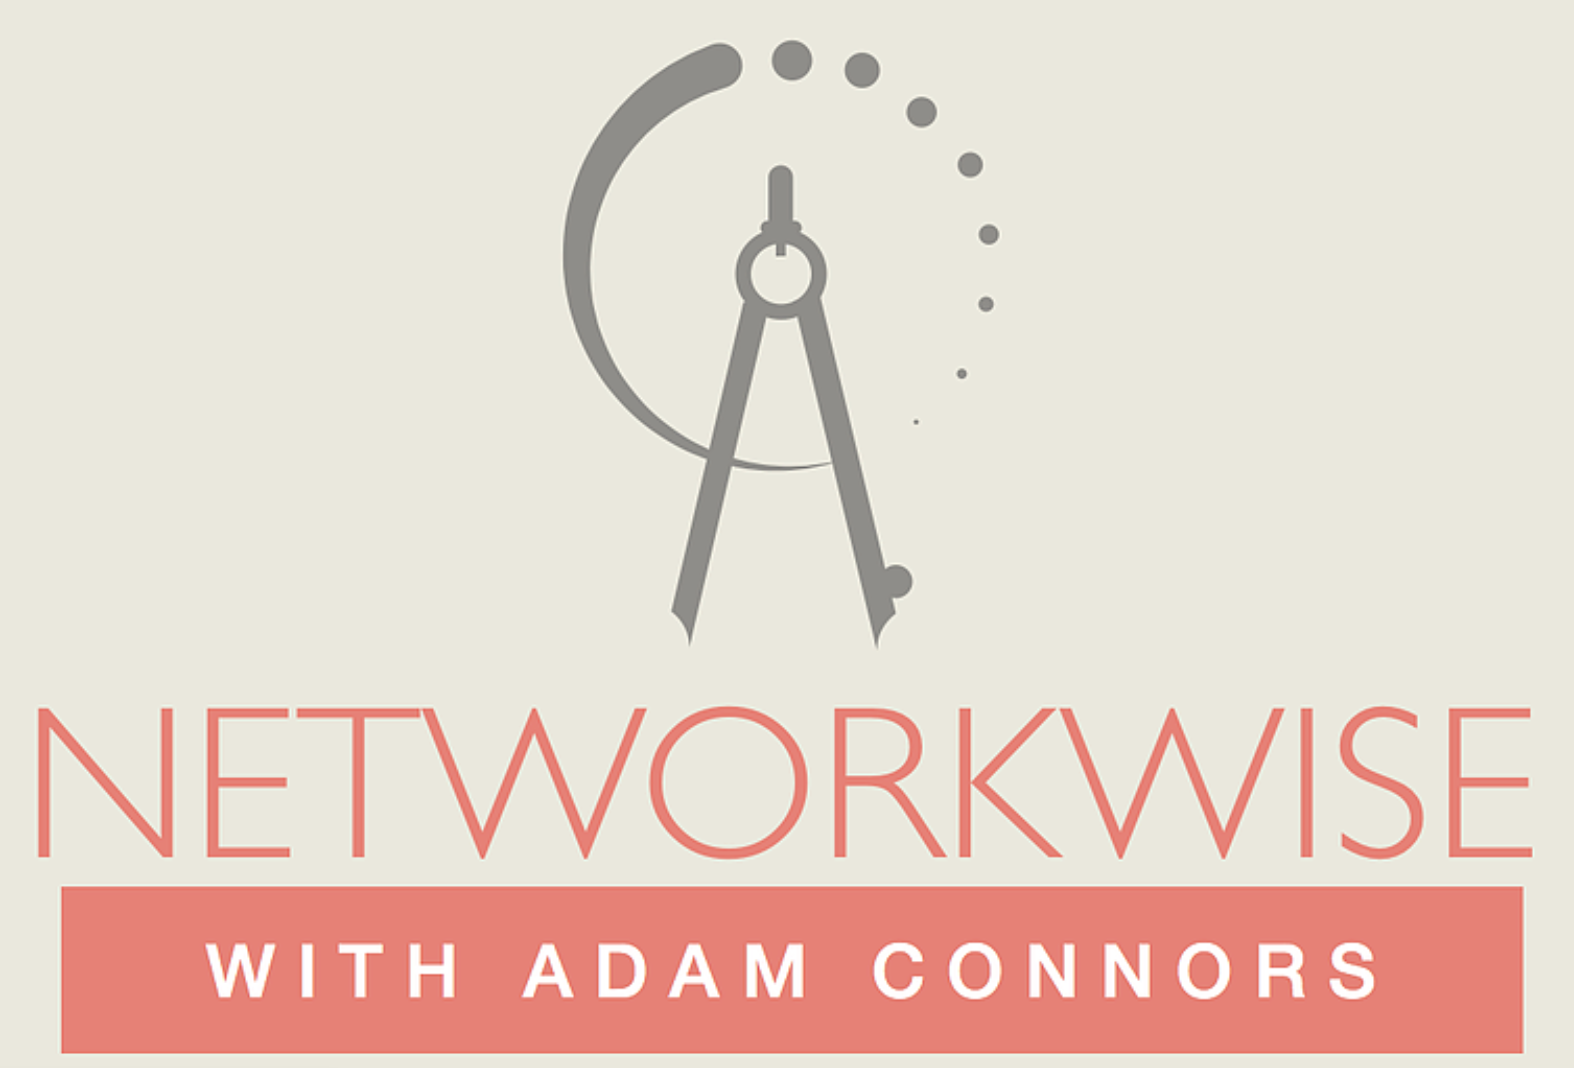 networkwise networking consulting firm